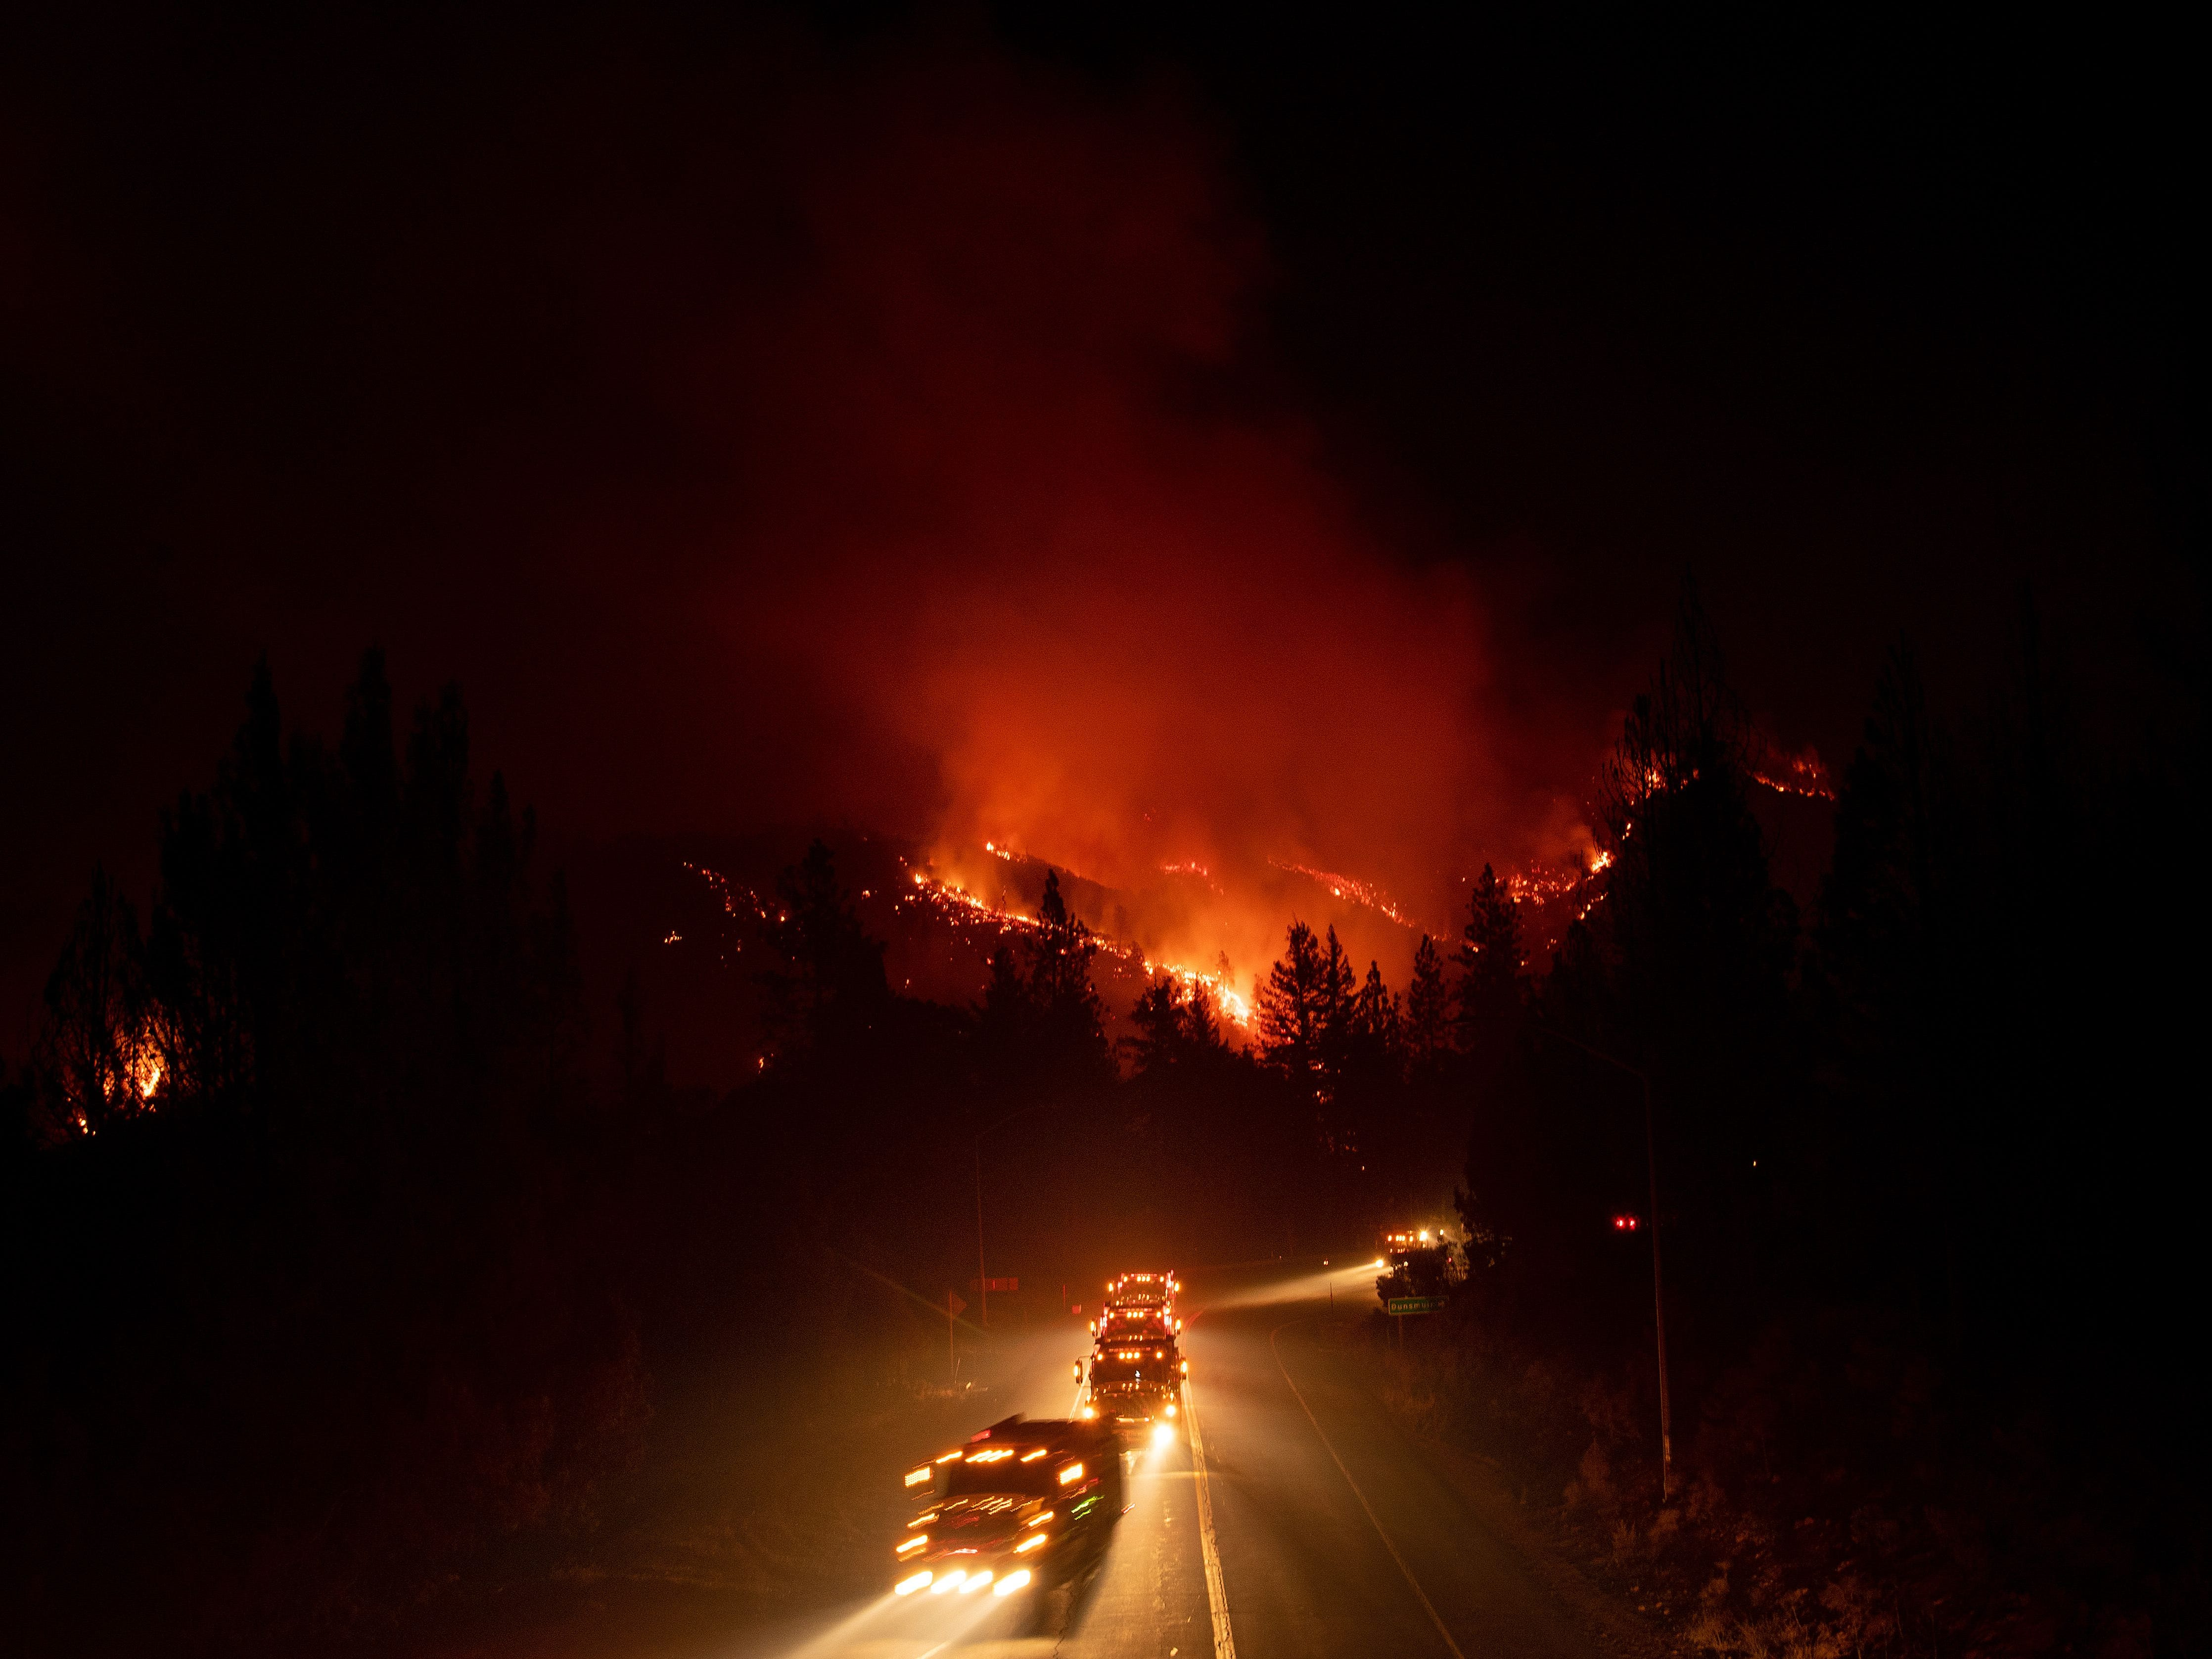 Fire trucks drive away from a burning hillside during the Delta Fire in Delta, Calif. on September 5, 2018.